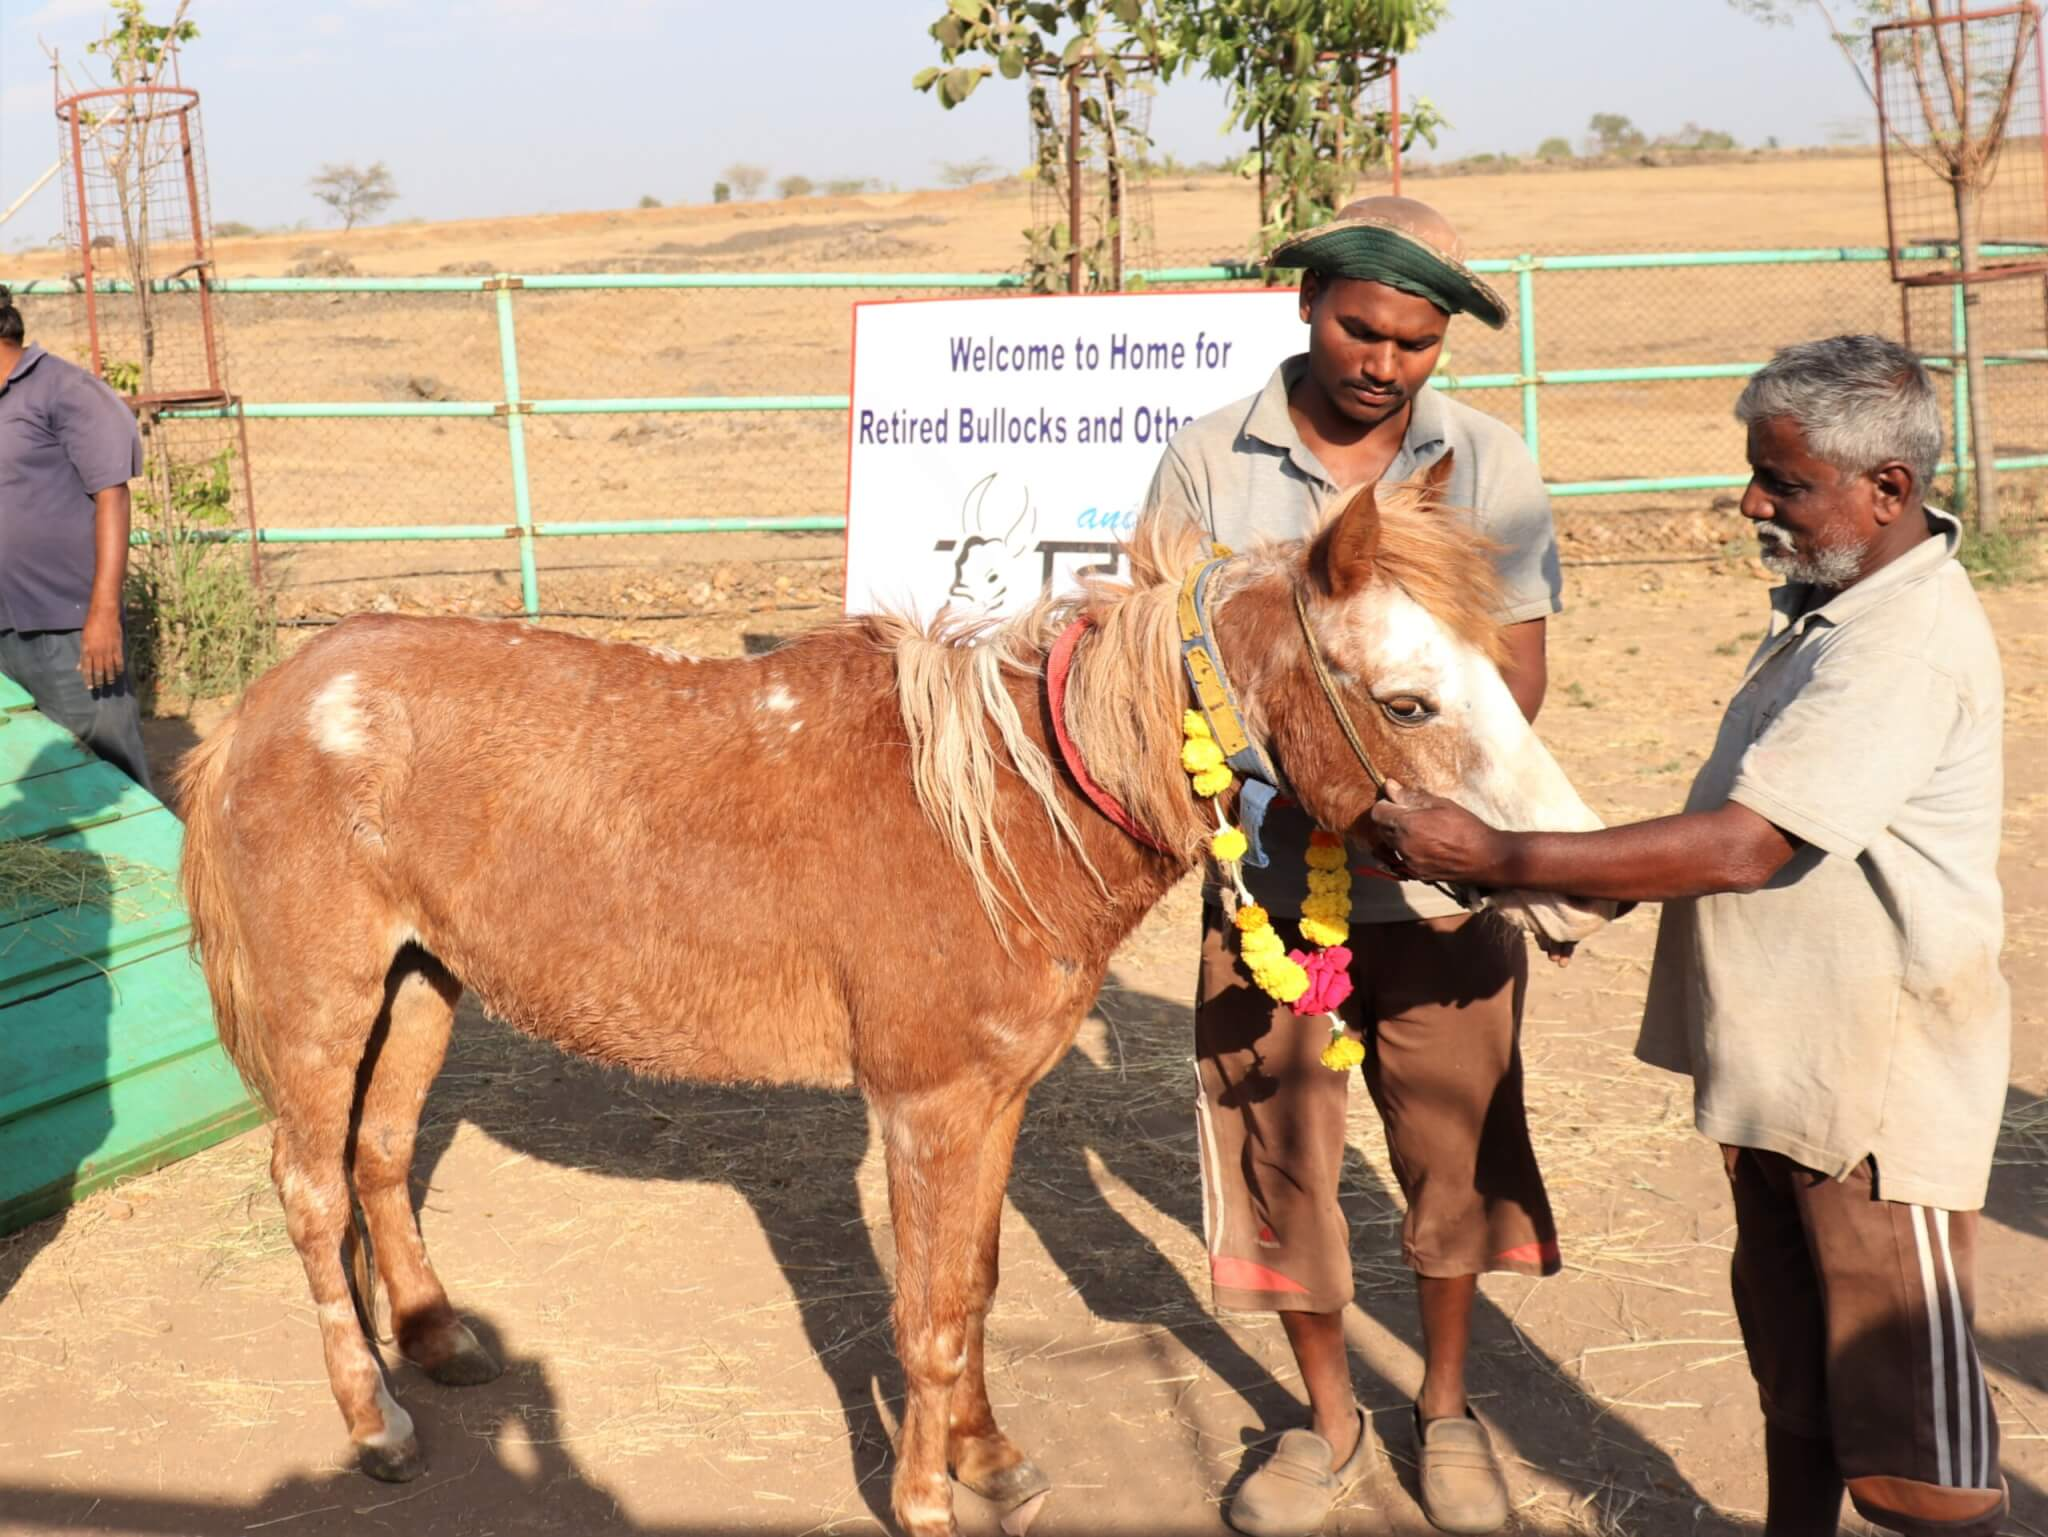 Fresh off the transport truck, rescued pony Roshani receives a flower garland and affection from one of the sanctuary's caretakers.